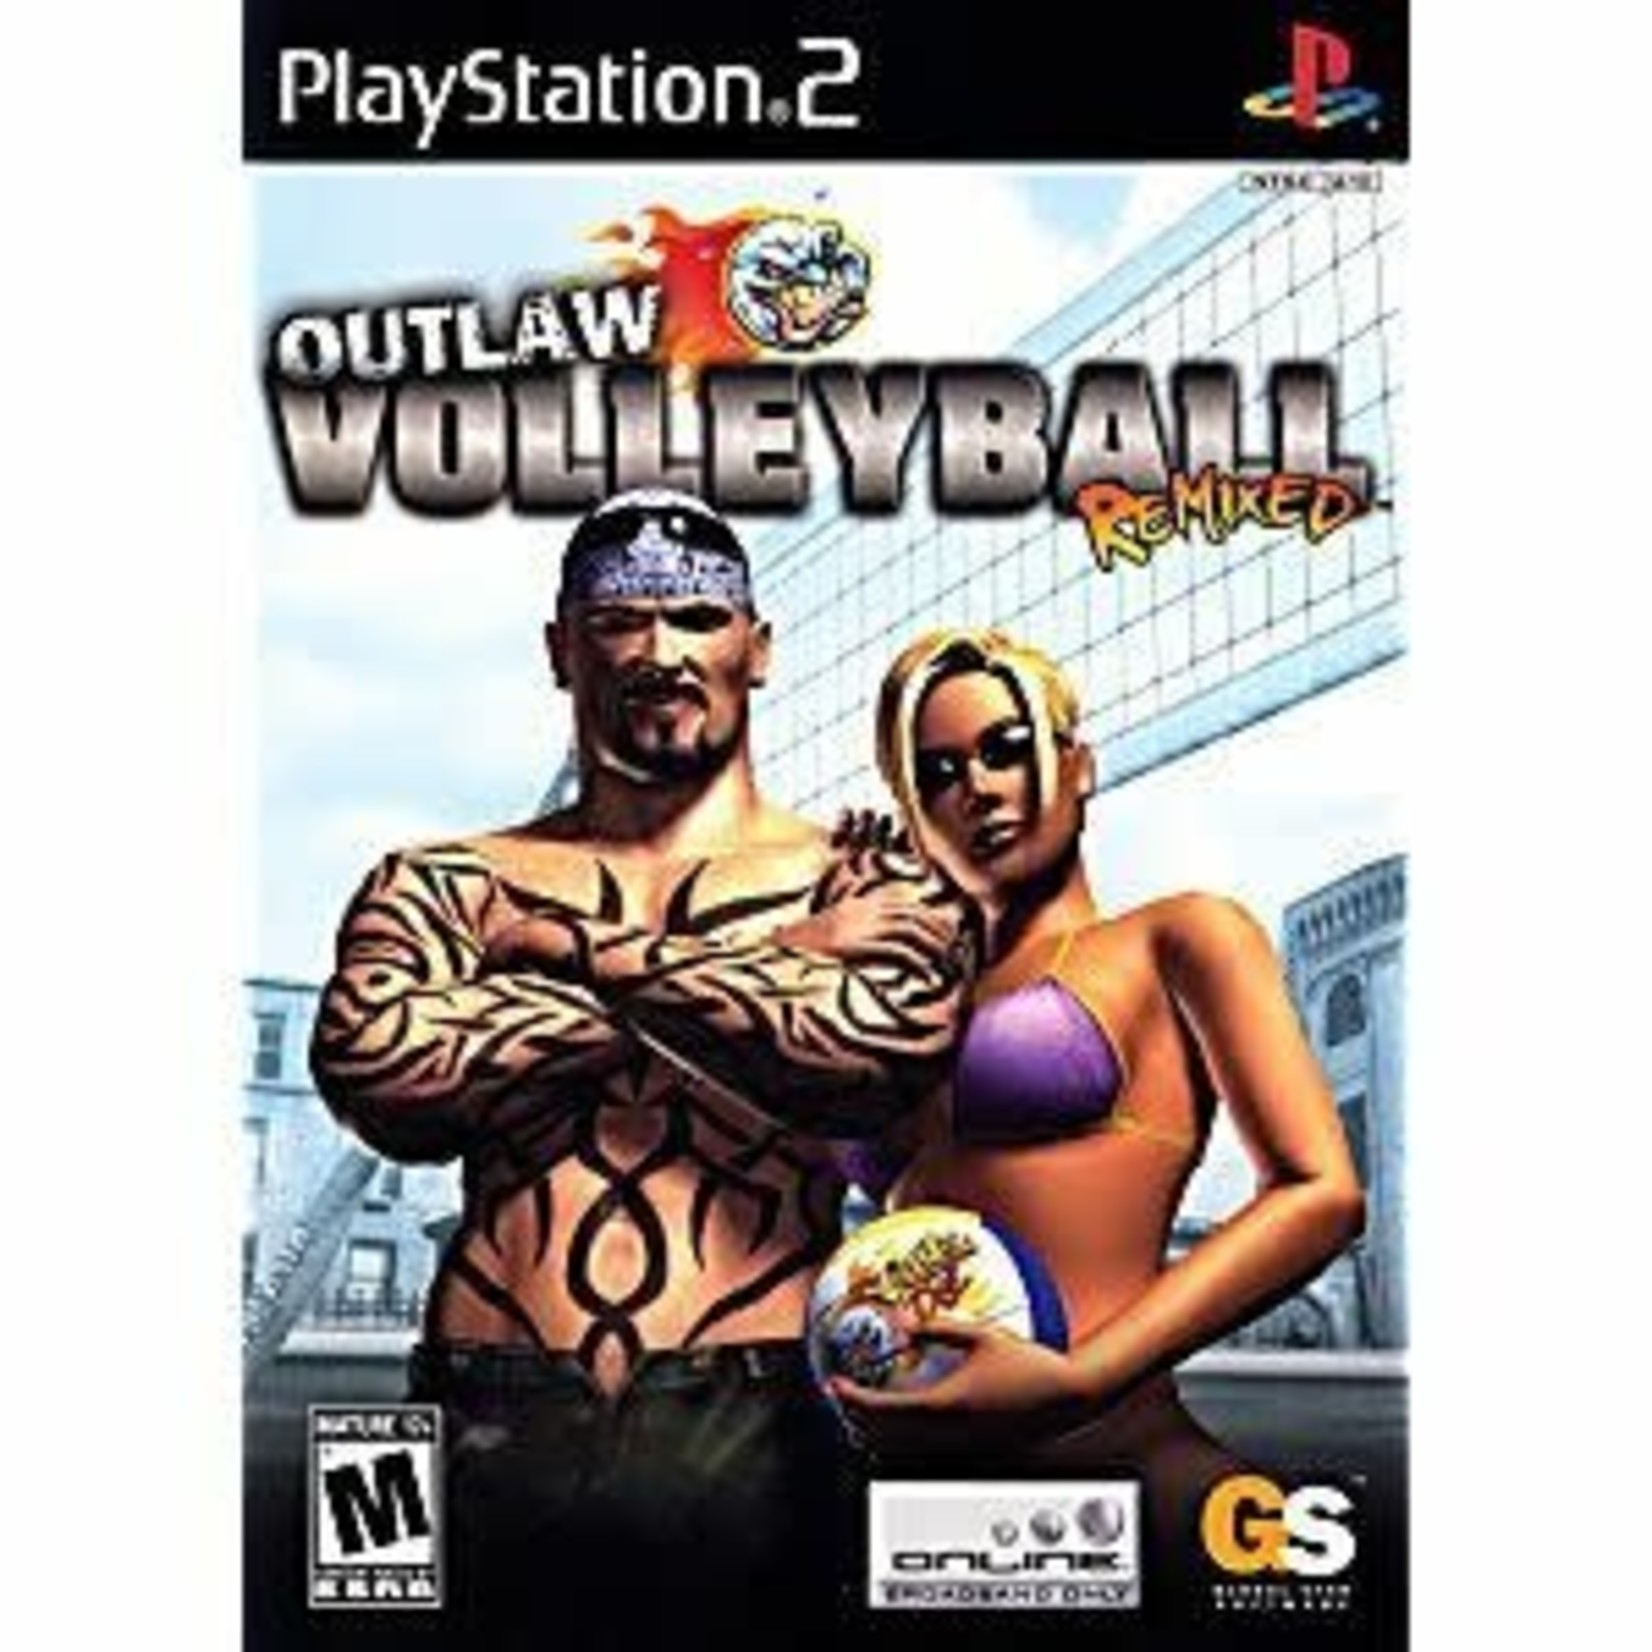 PS2U-OUTLAW VOLLEYBALL REMIXED